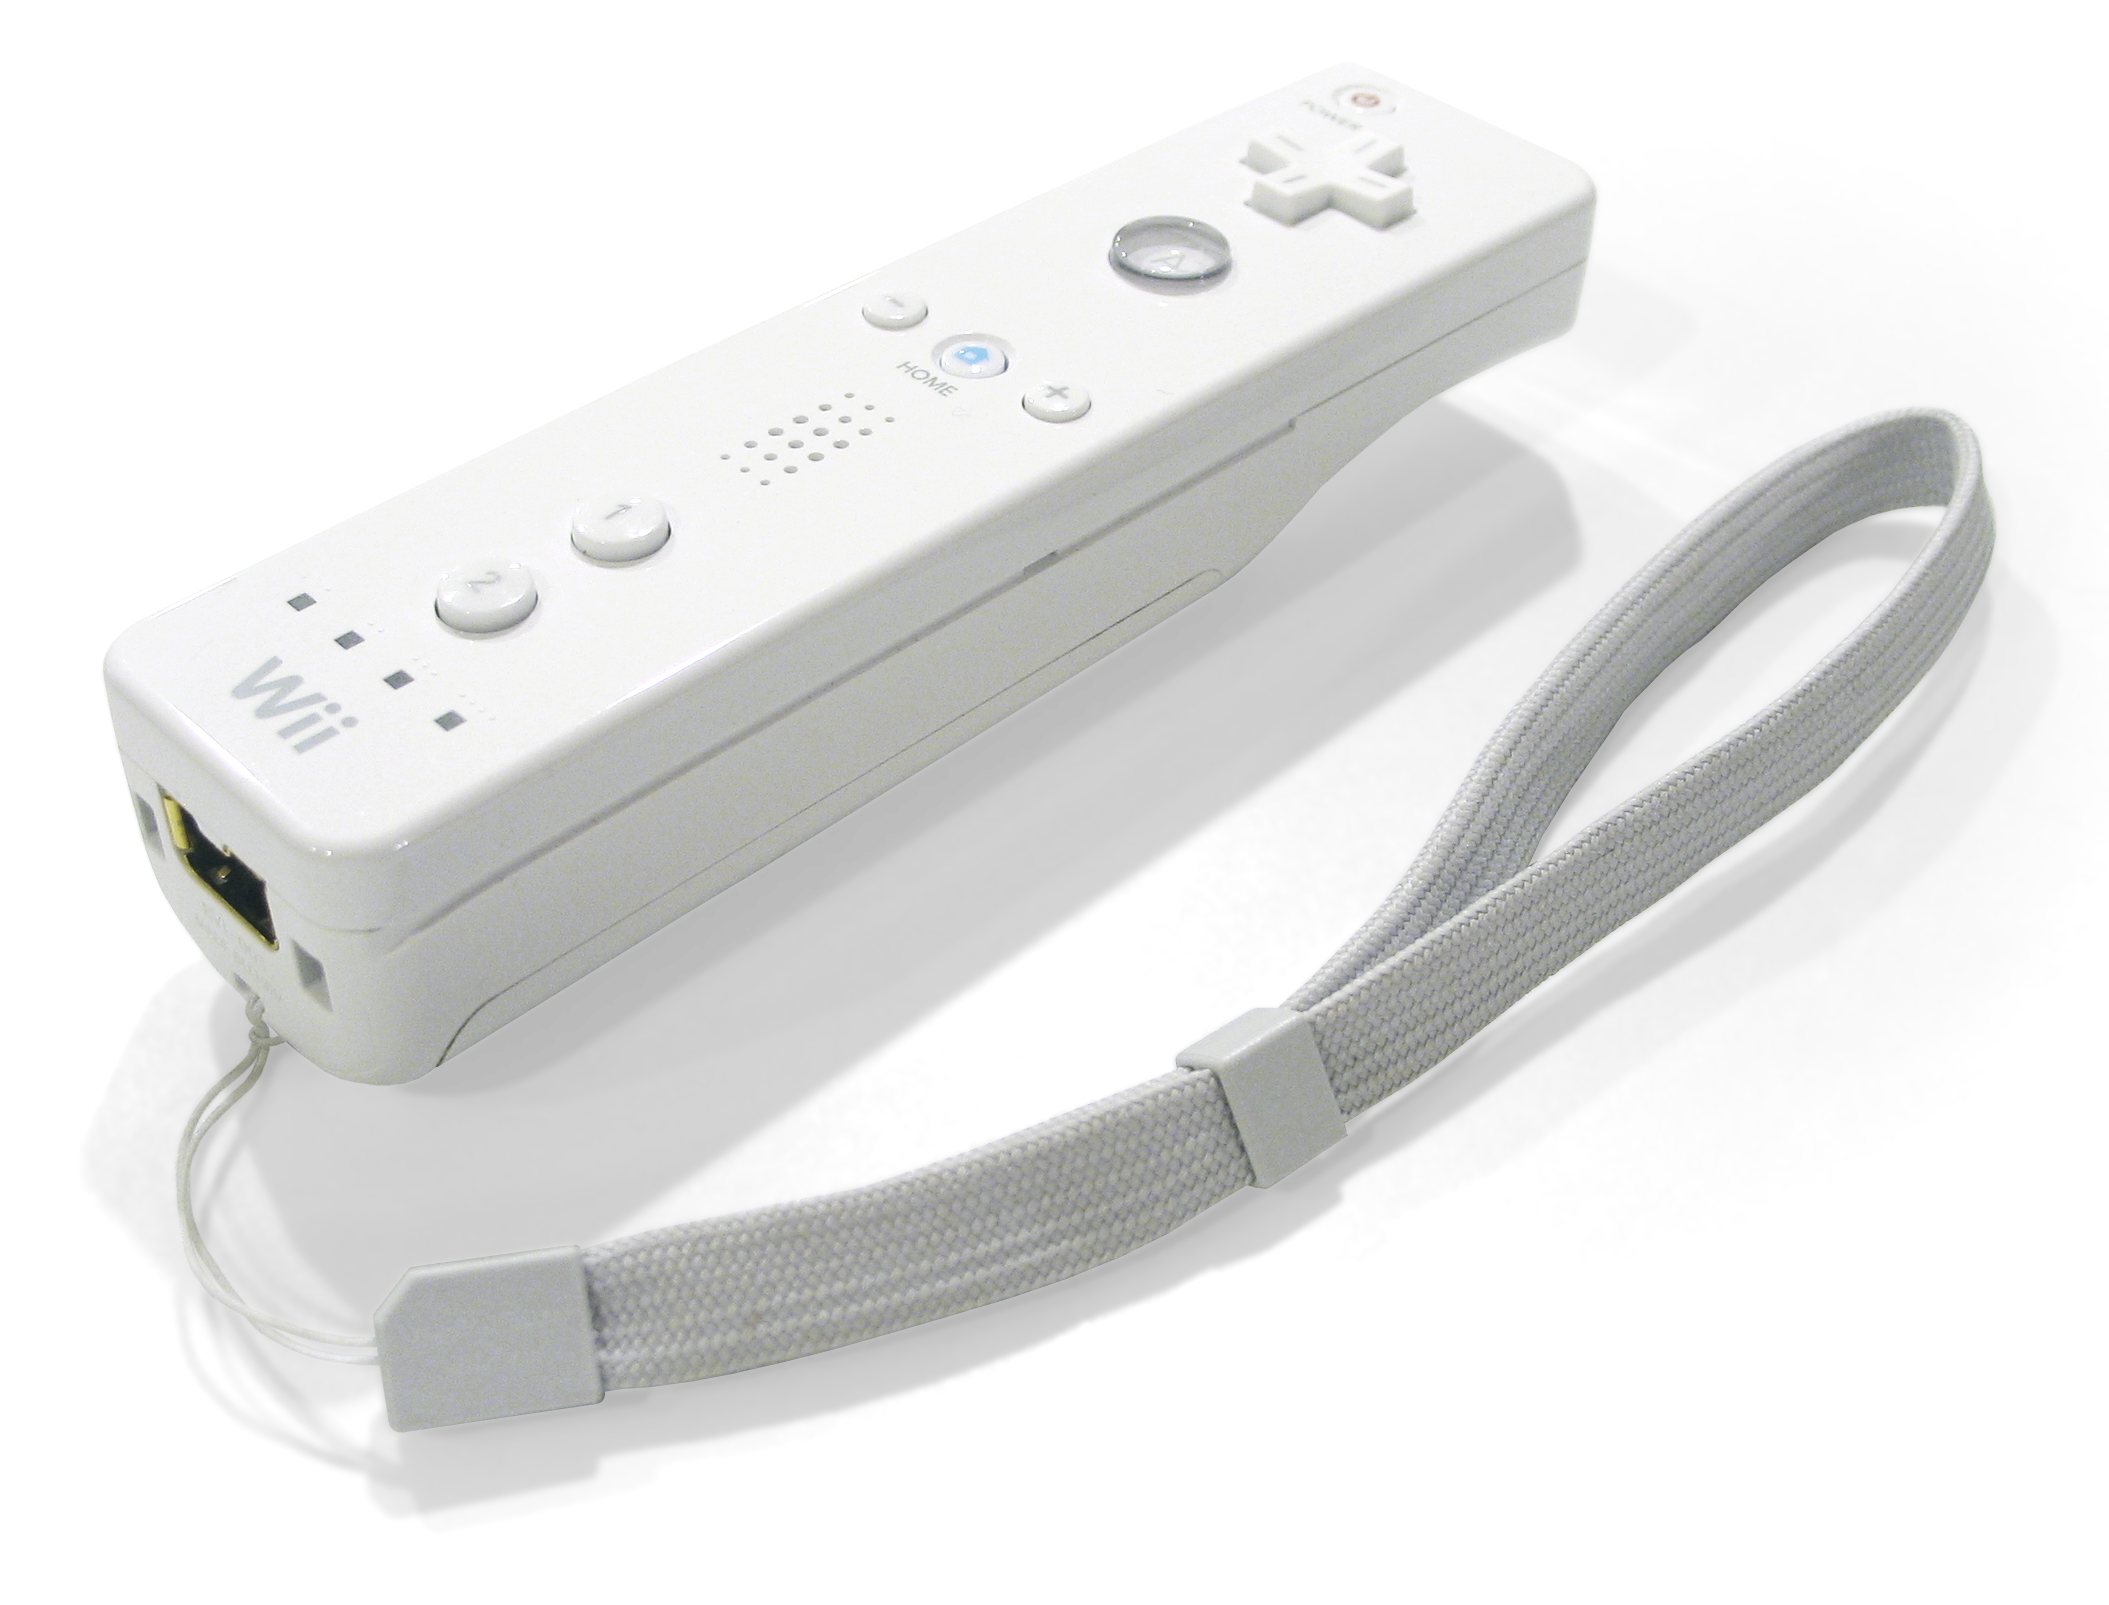 wii remote nintendo fandom powered by wikia